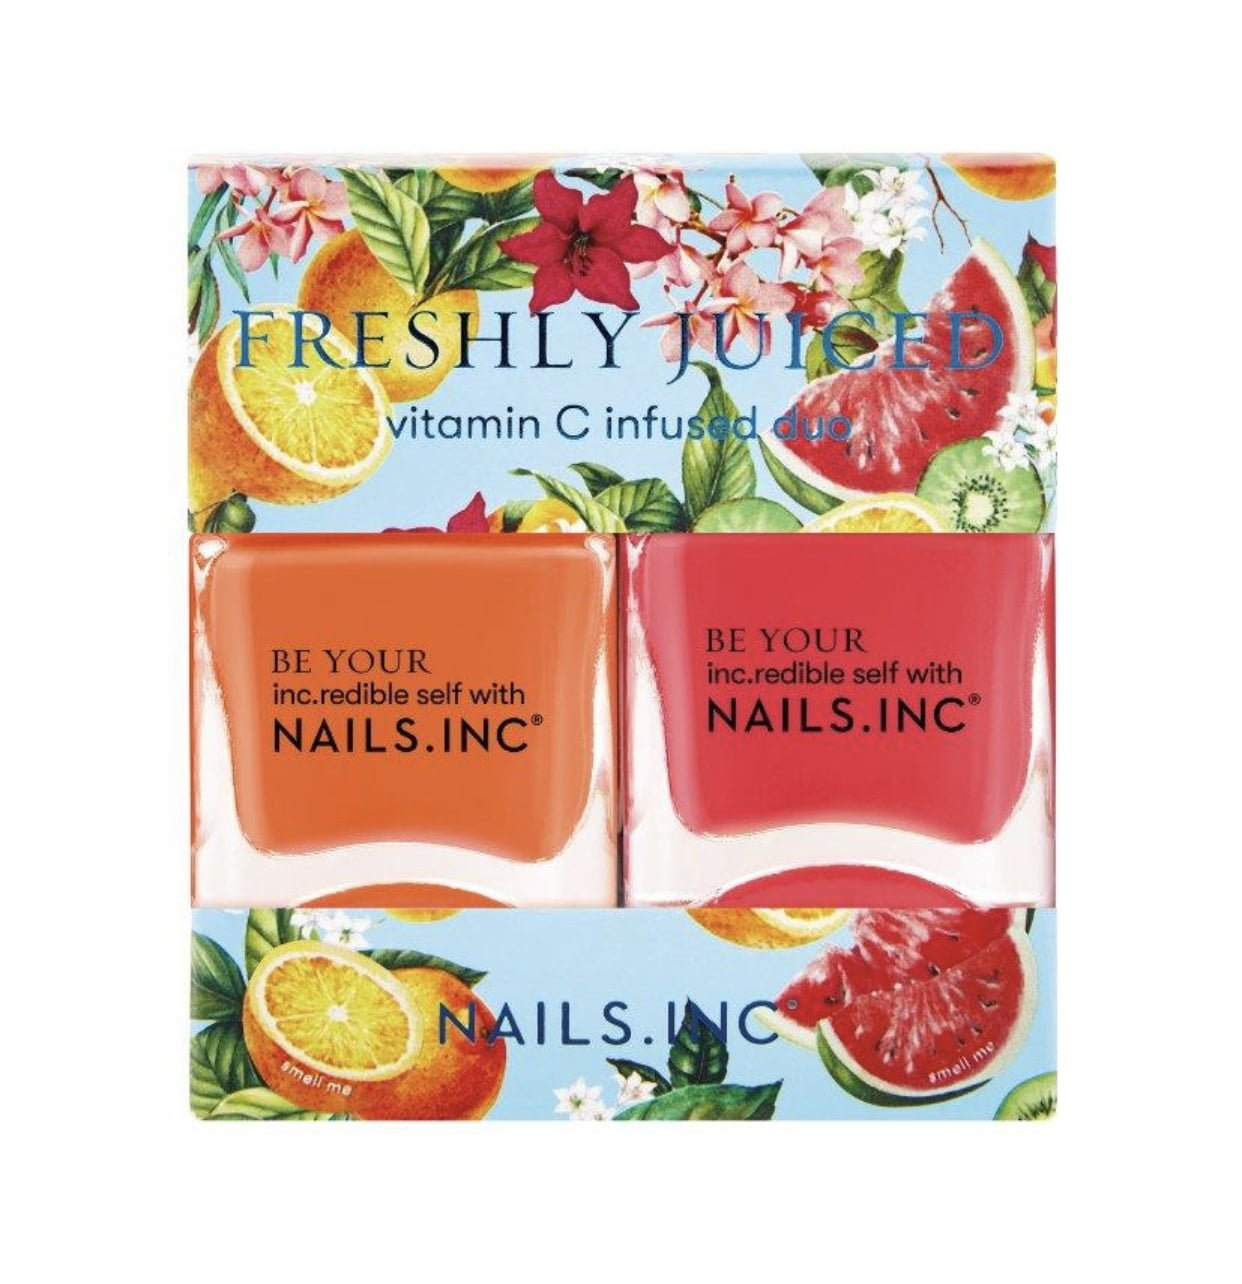 Nails Inc Freshly Juiced Vitamin C Infused Duo